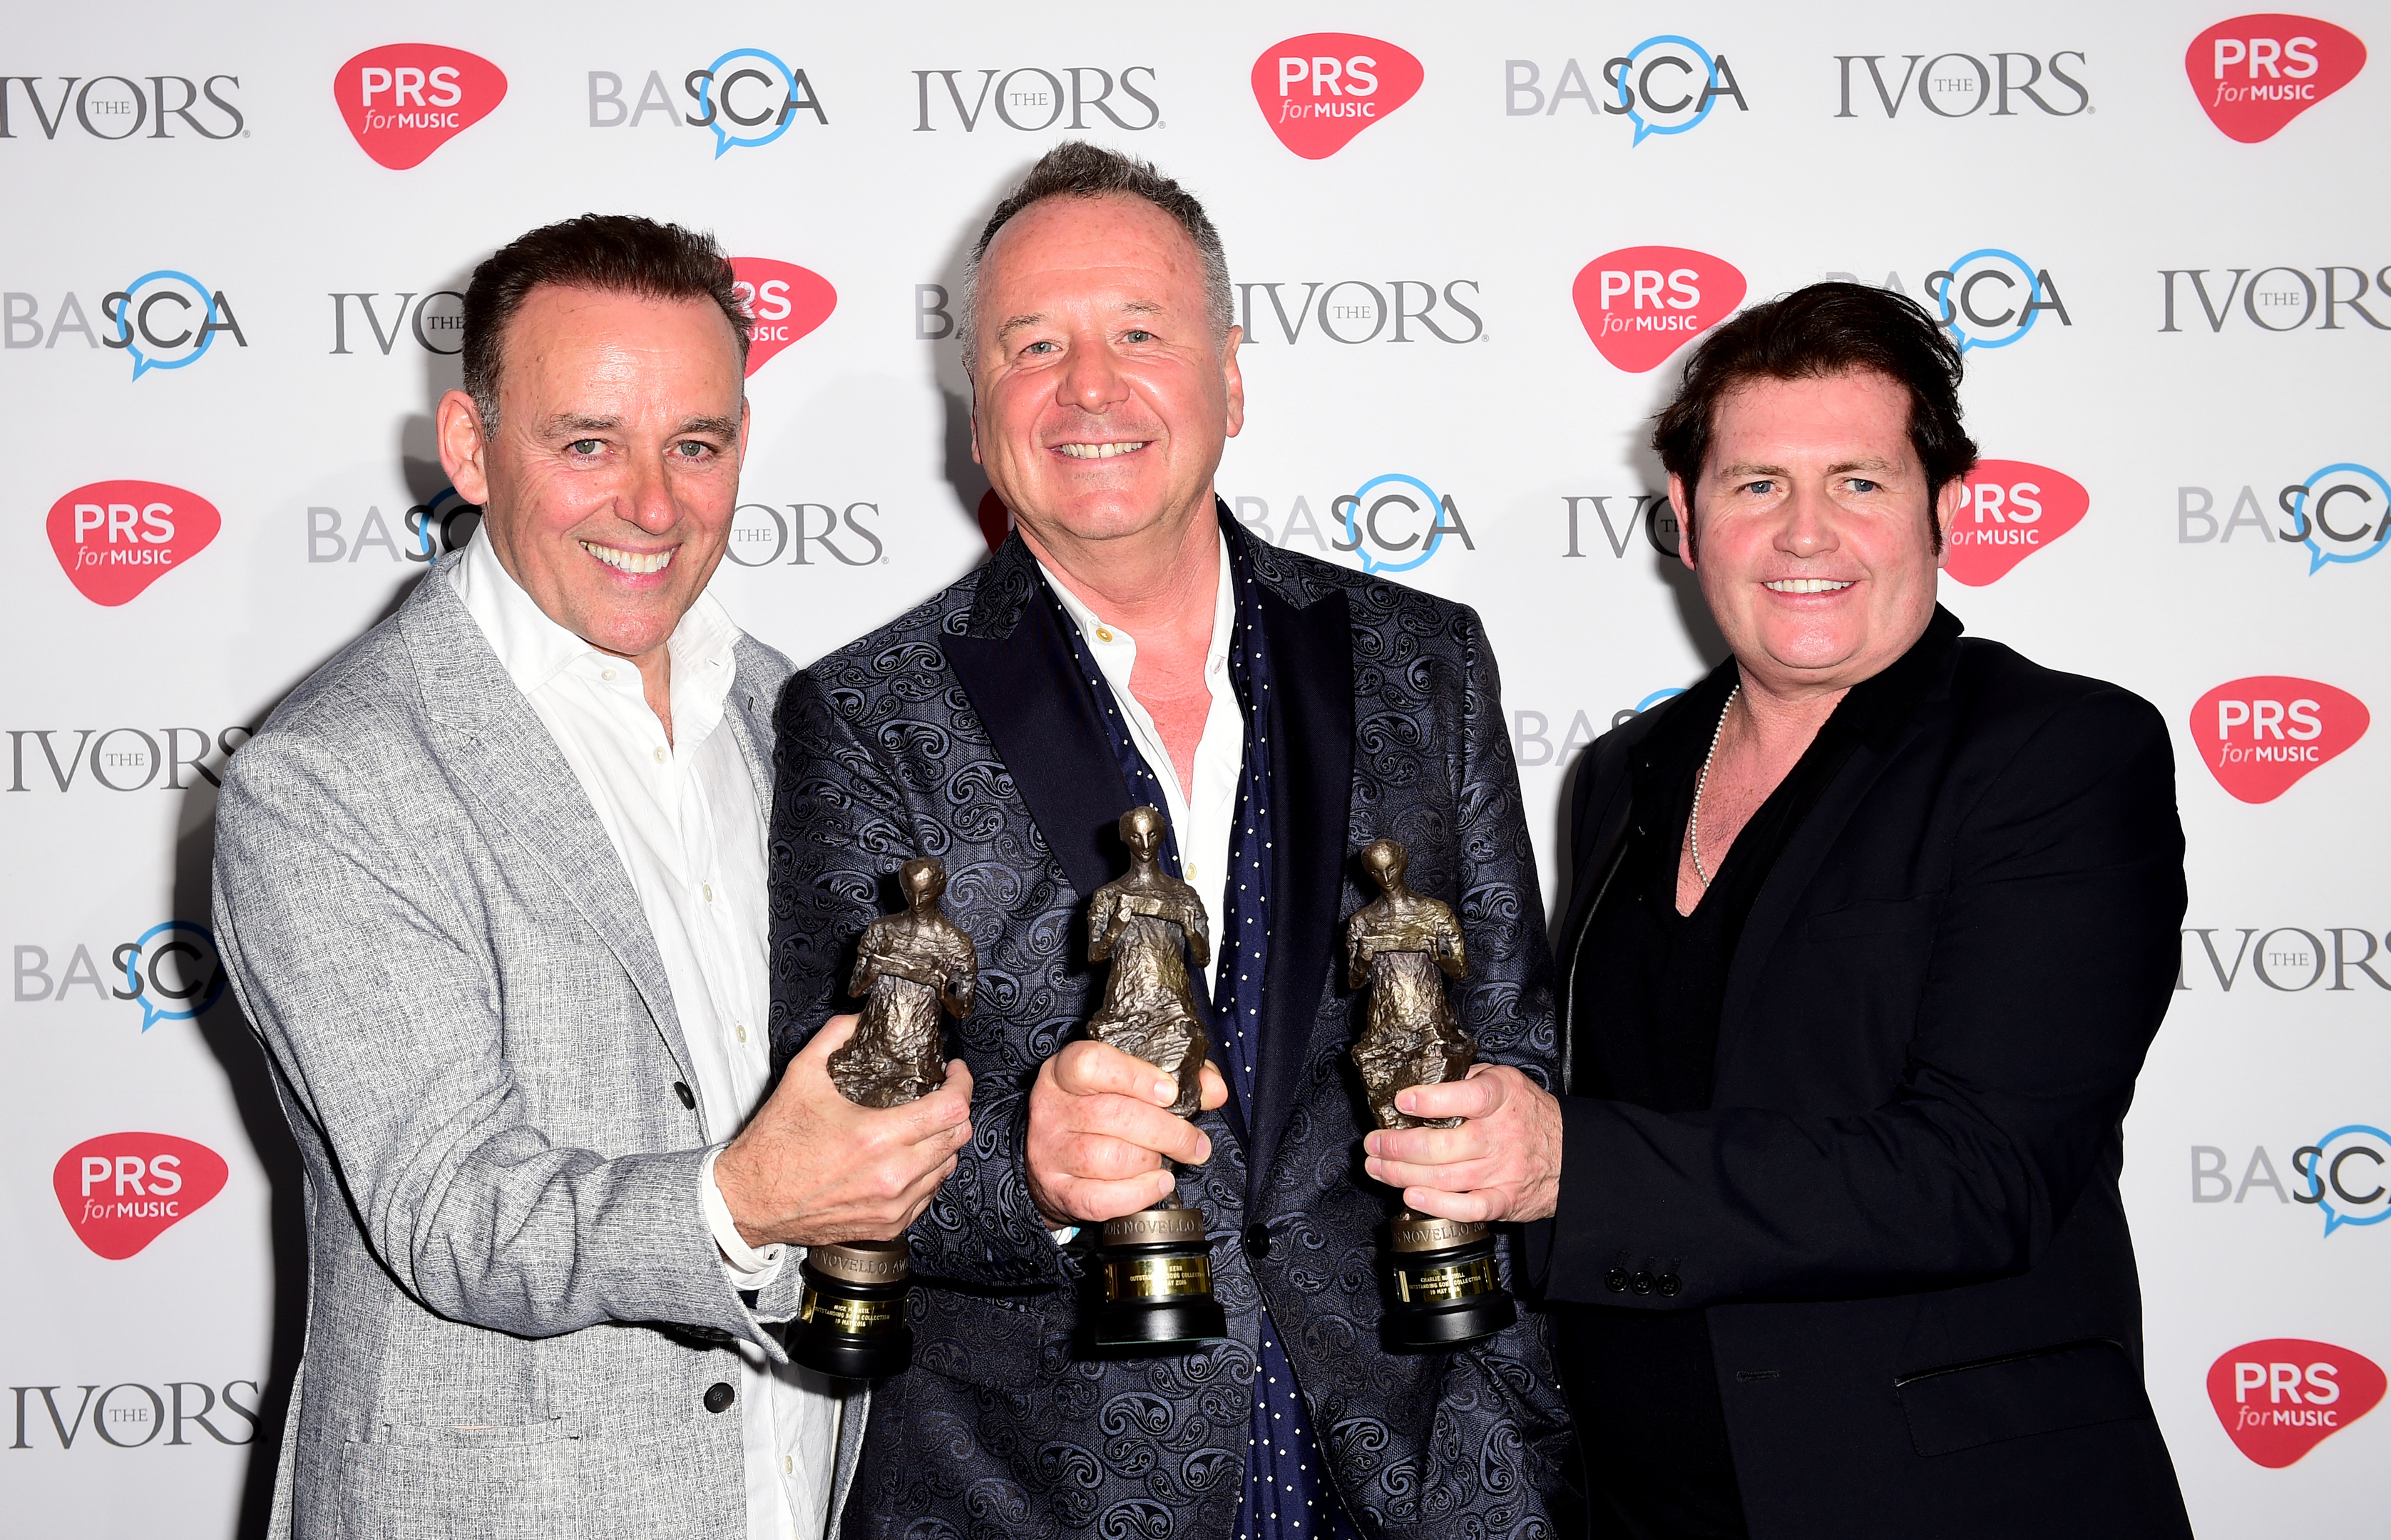 Mick MacNeil, Jim Kerr and Charlie Burchill of Simple Minds with the Outstanding Song Collection Award during the 2016 61st Annual Ivor Novello Music Awards at Grosvenor House in London